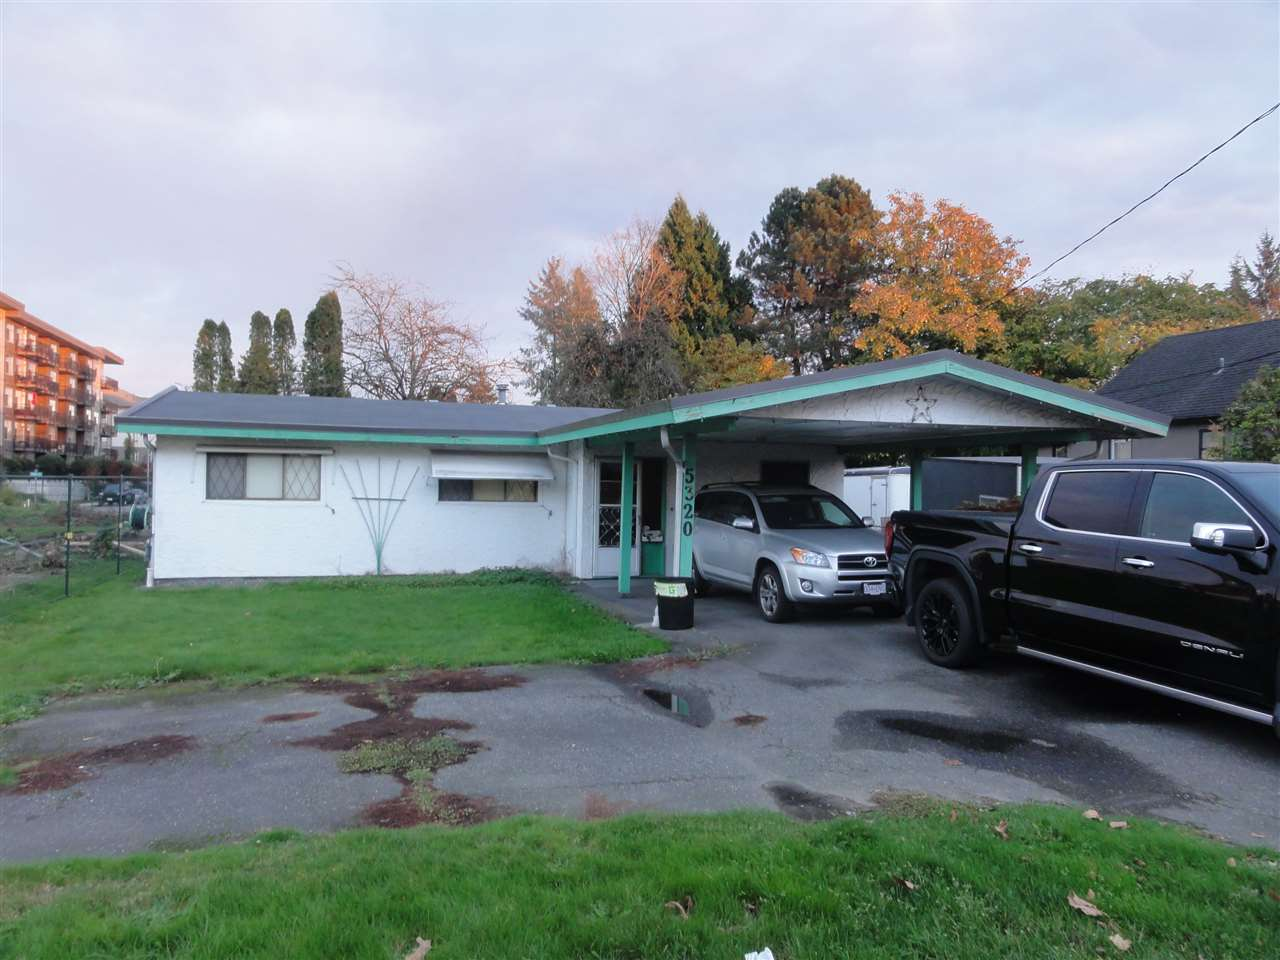 Investors take note, hold this prime property for redevelopment. This solid Rancher on a 6000sq. ft lot offers 3 bedrooms, 10 year old Polmer roof, heat pump for comfort all year long. Live in or rent out will waiting for development.